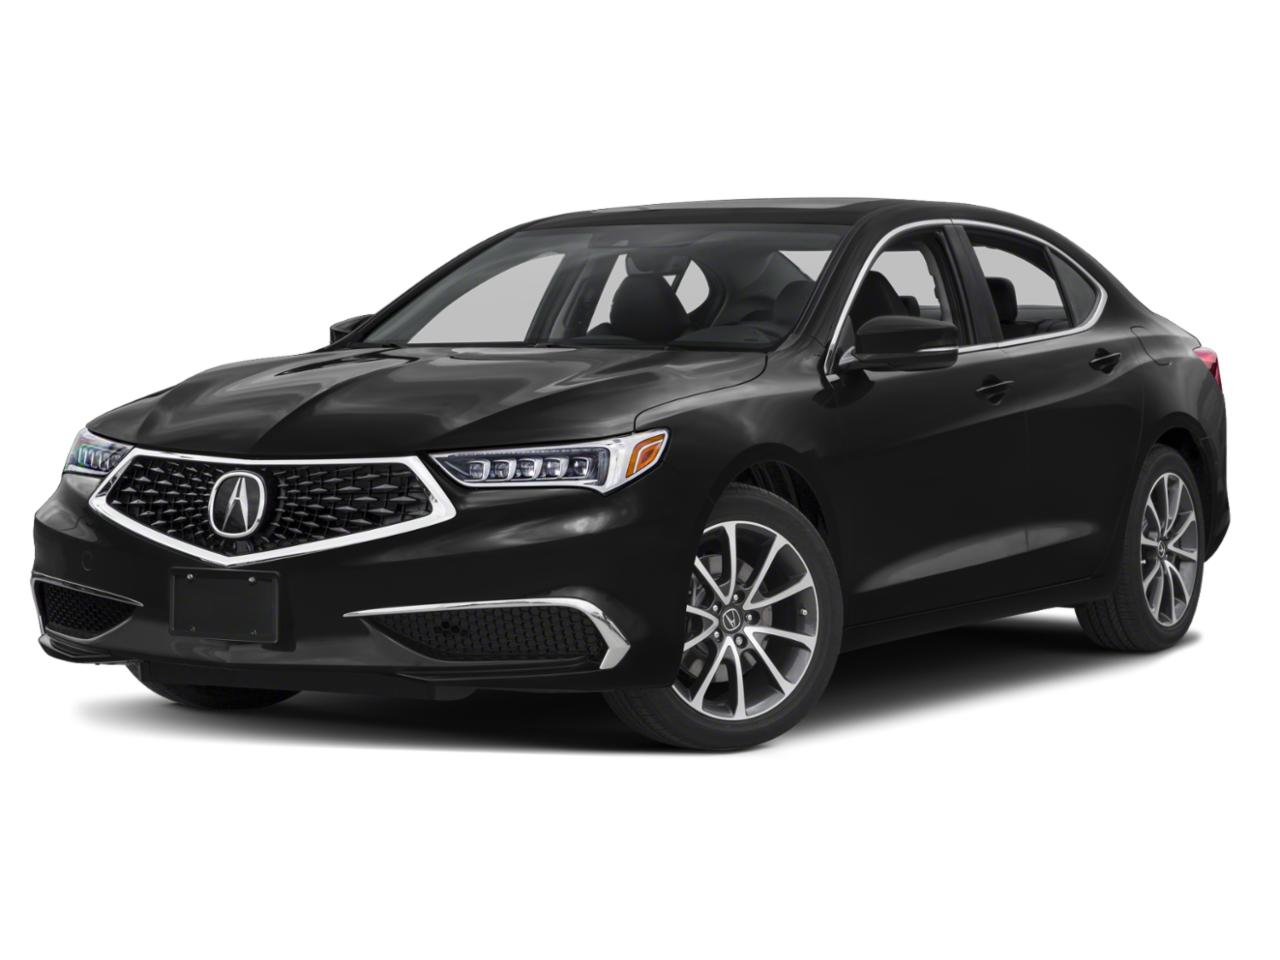 2020 Acura TLX Vehicle Photo in Colorado Springs, CO 80905